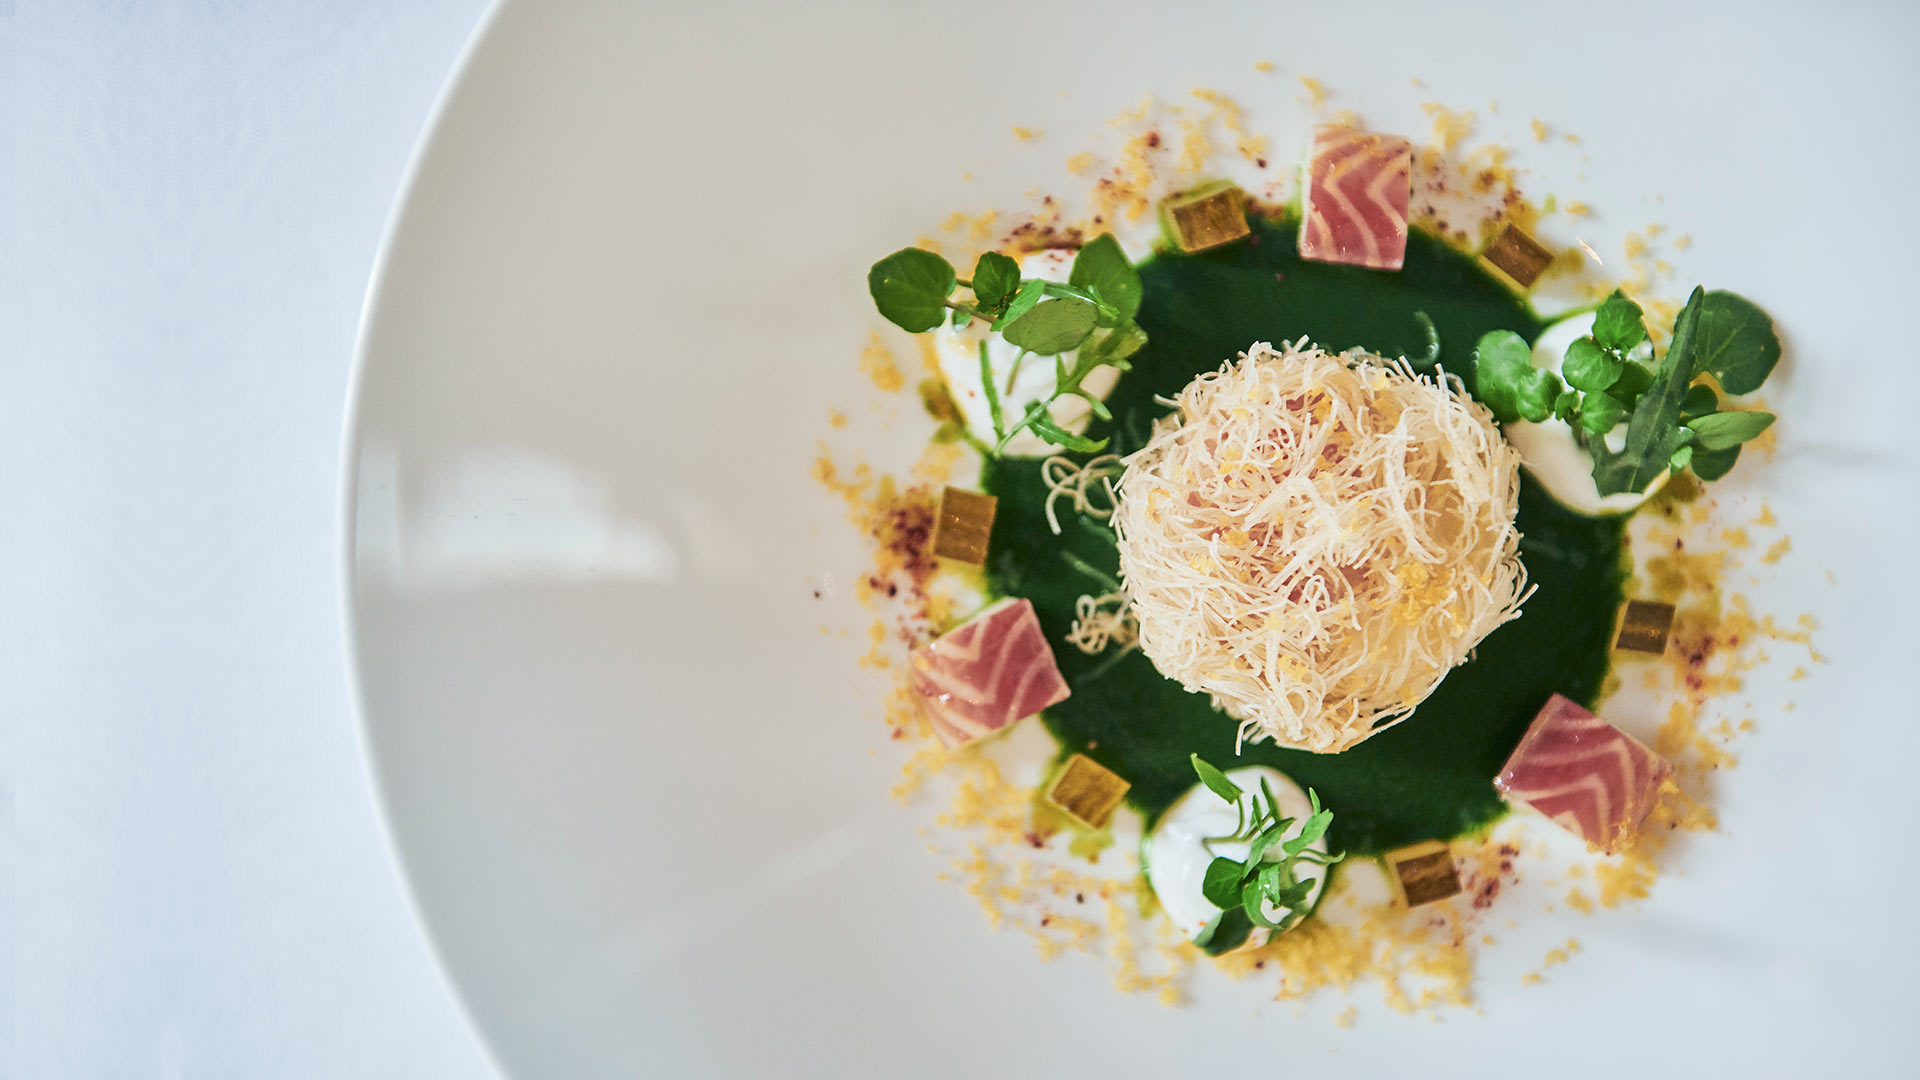 Crisp-hen-egg-watercress,-smoked-eel-skry-and-bottarga-1920x1080